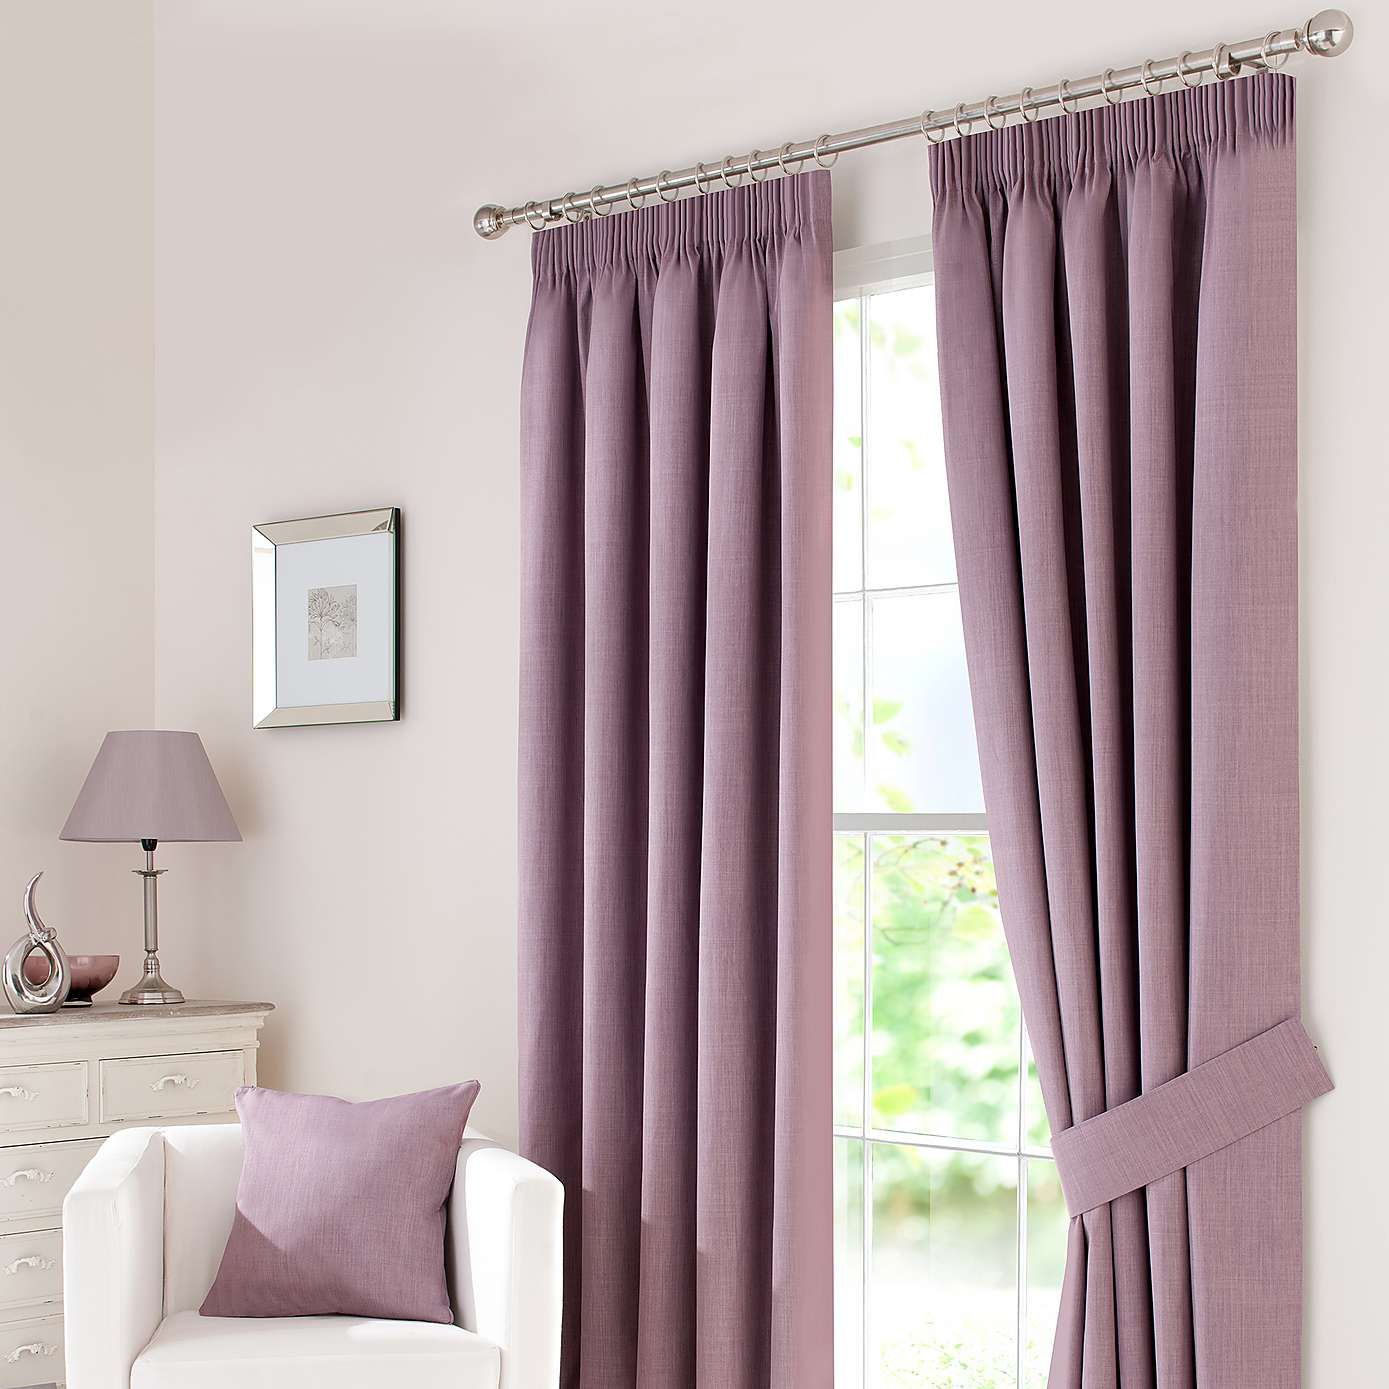 Blackout curtains for bedroom - Mauve Solar Blackout Pencil Pleat Curtain Dunelm